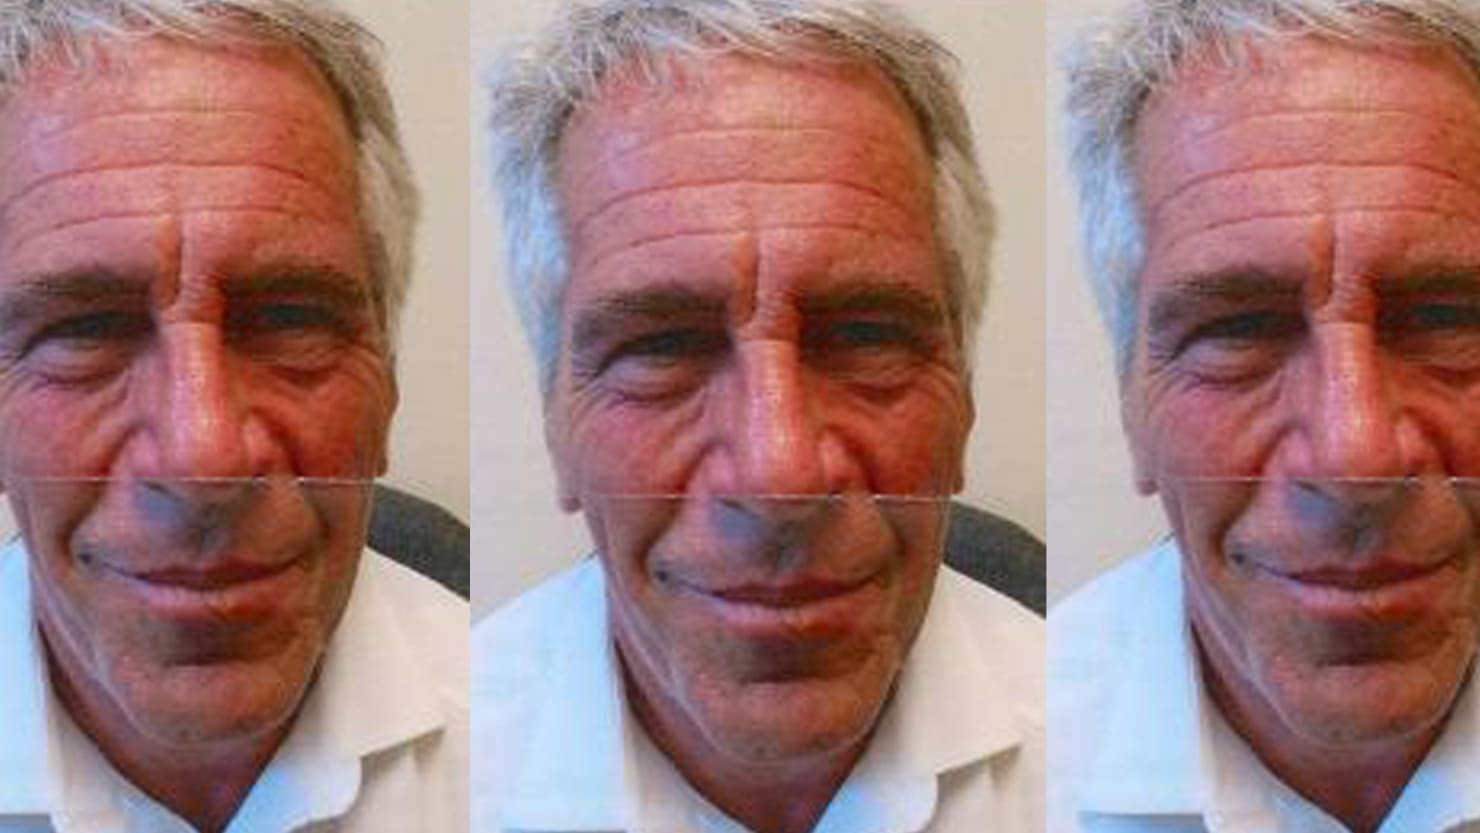 Jeffrey Epstein's Fake, Foreign Passport Was Used in Saudi Arabia and Other Countries